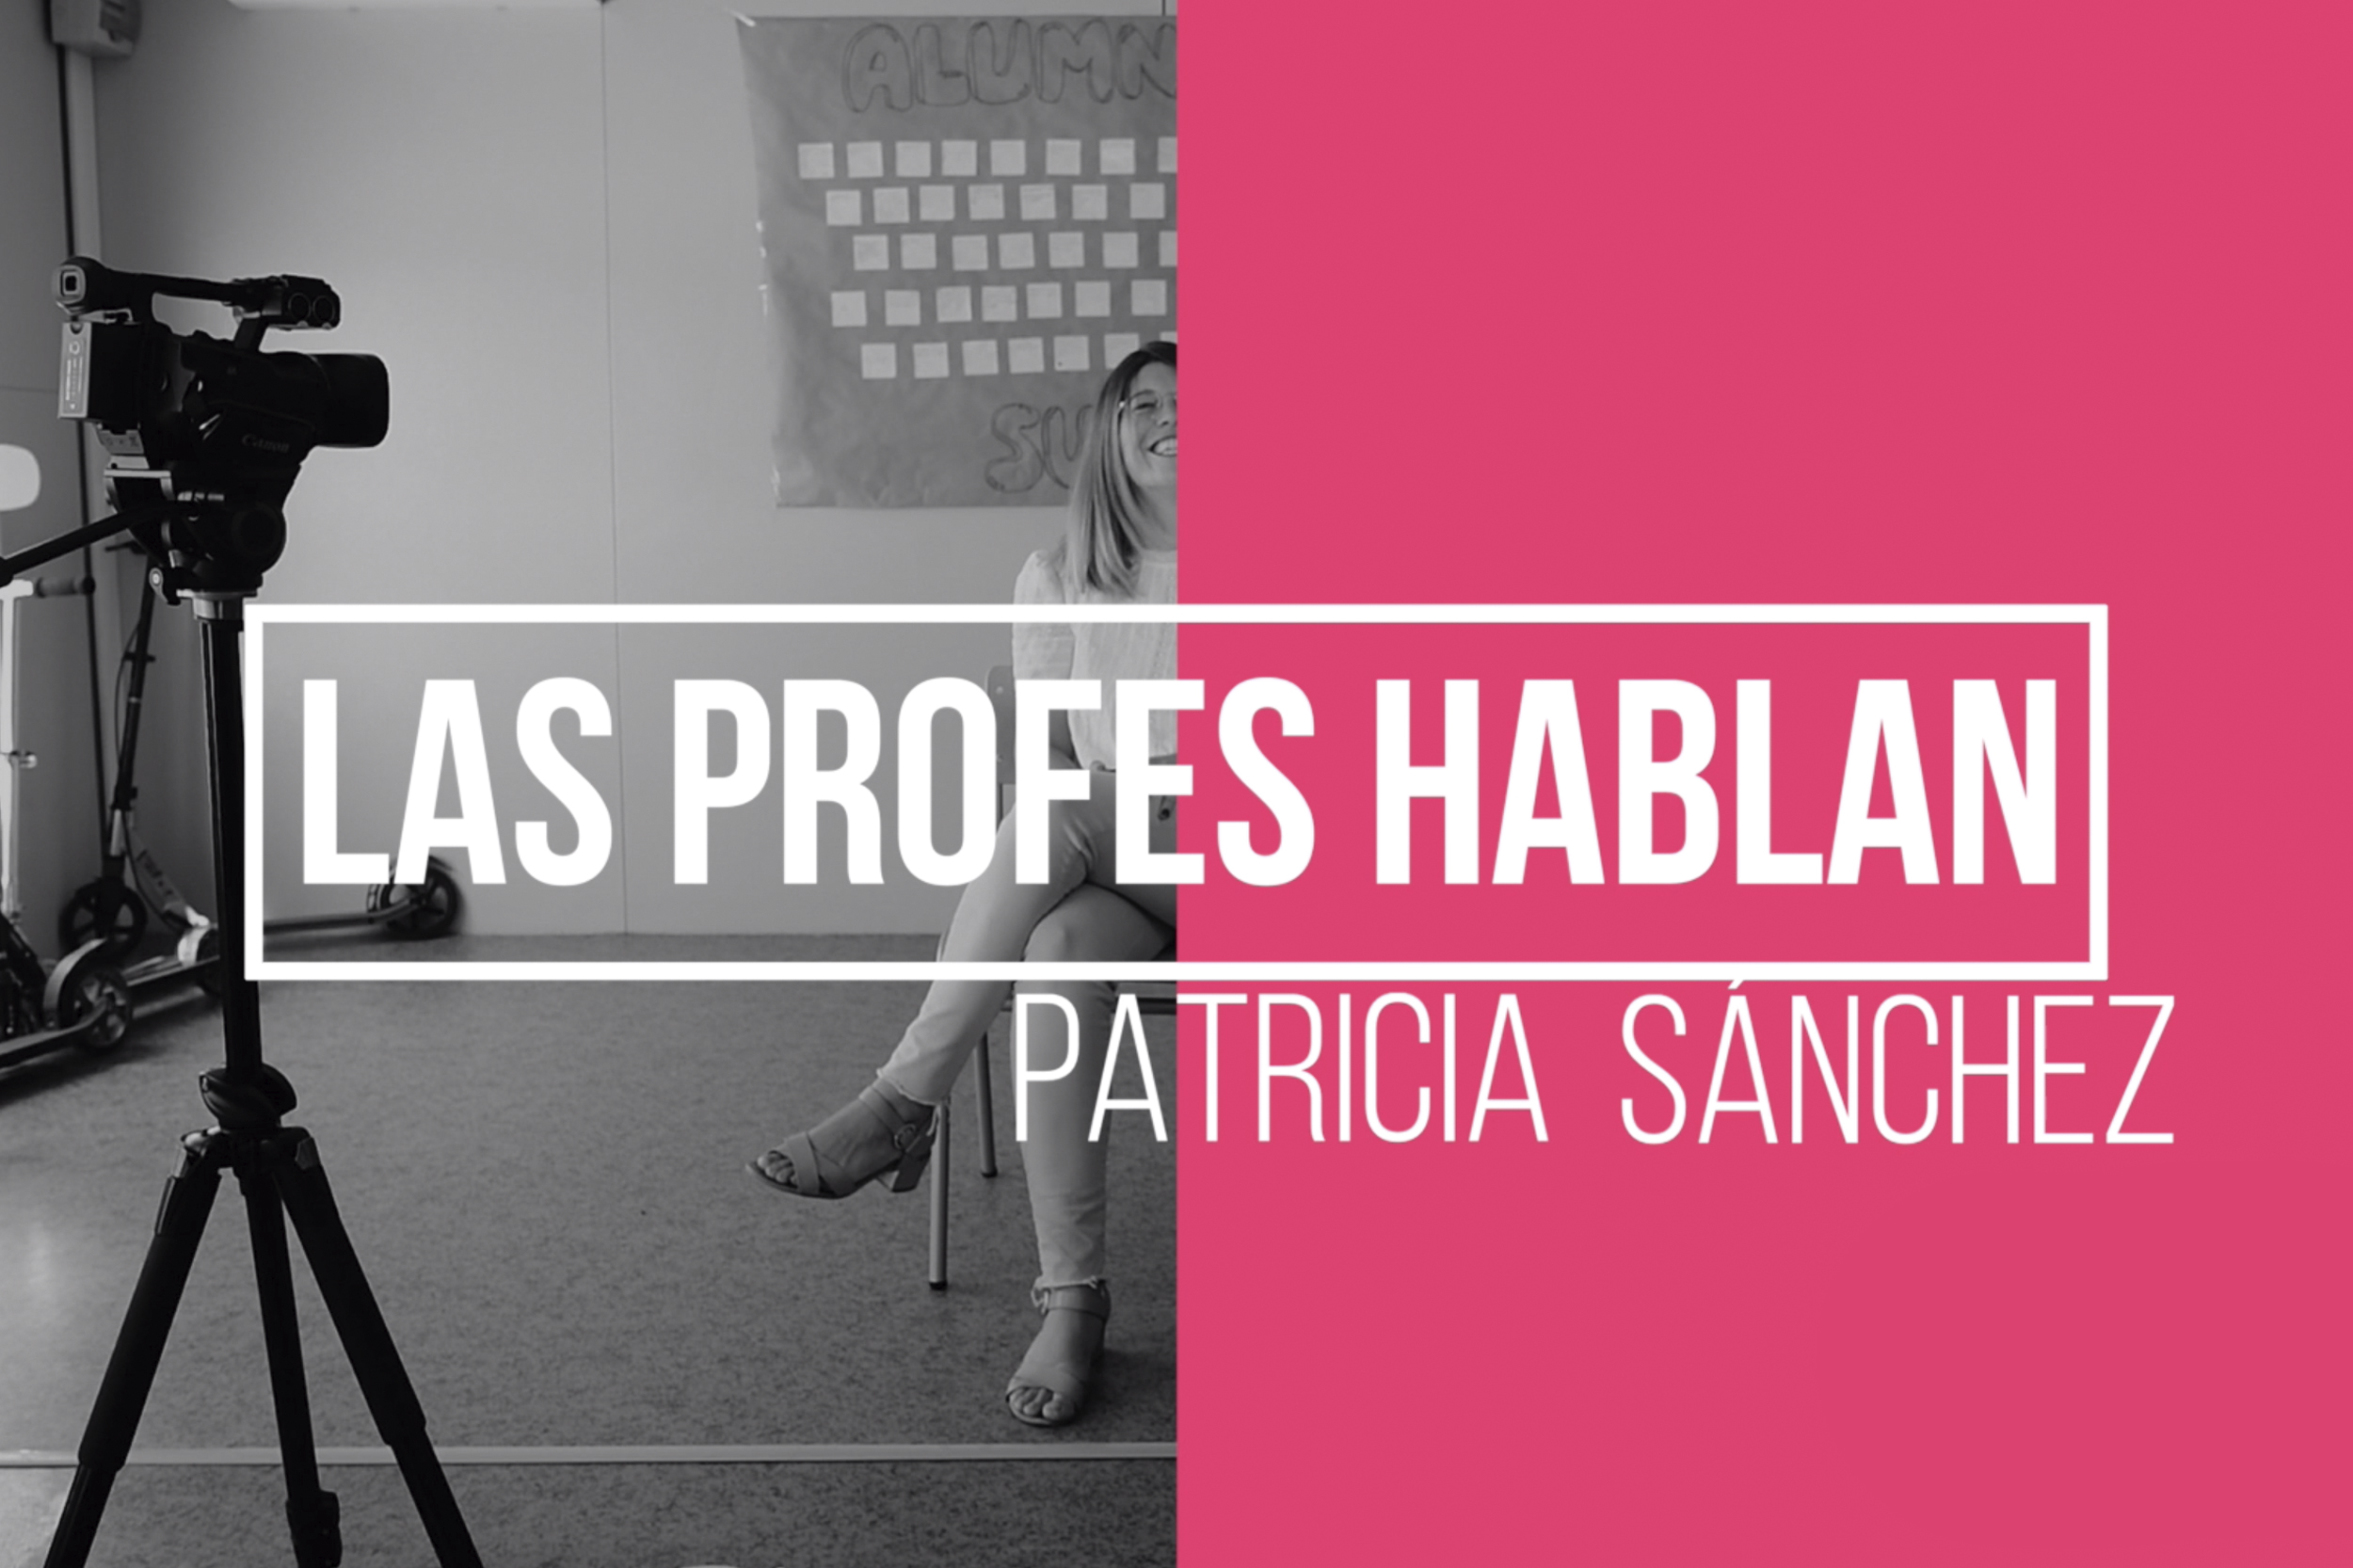 Las Profes Hablan: Patricia Sánchez Badajoz. IESO nº 1 Olías del Rey